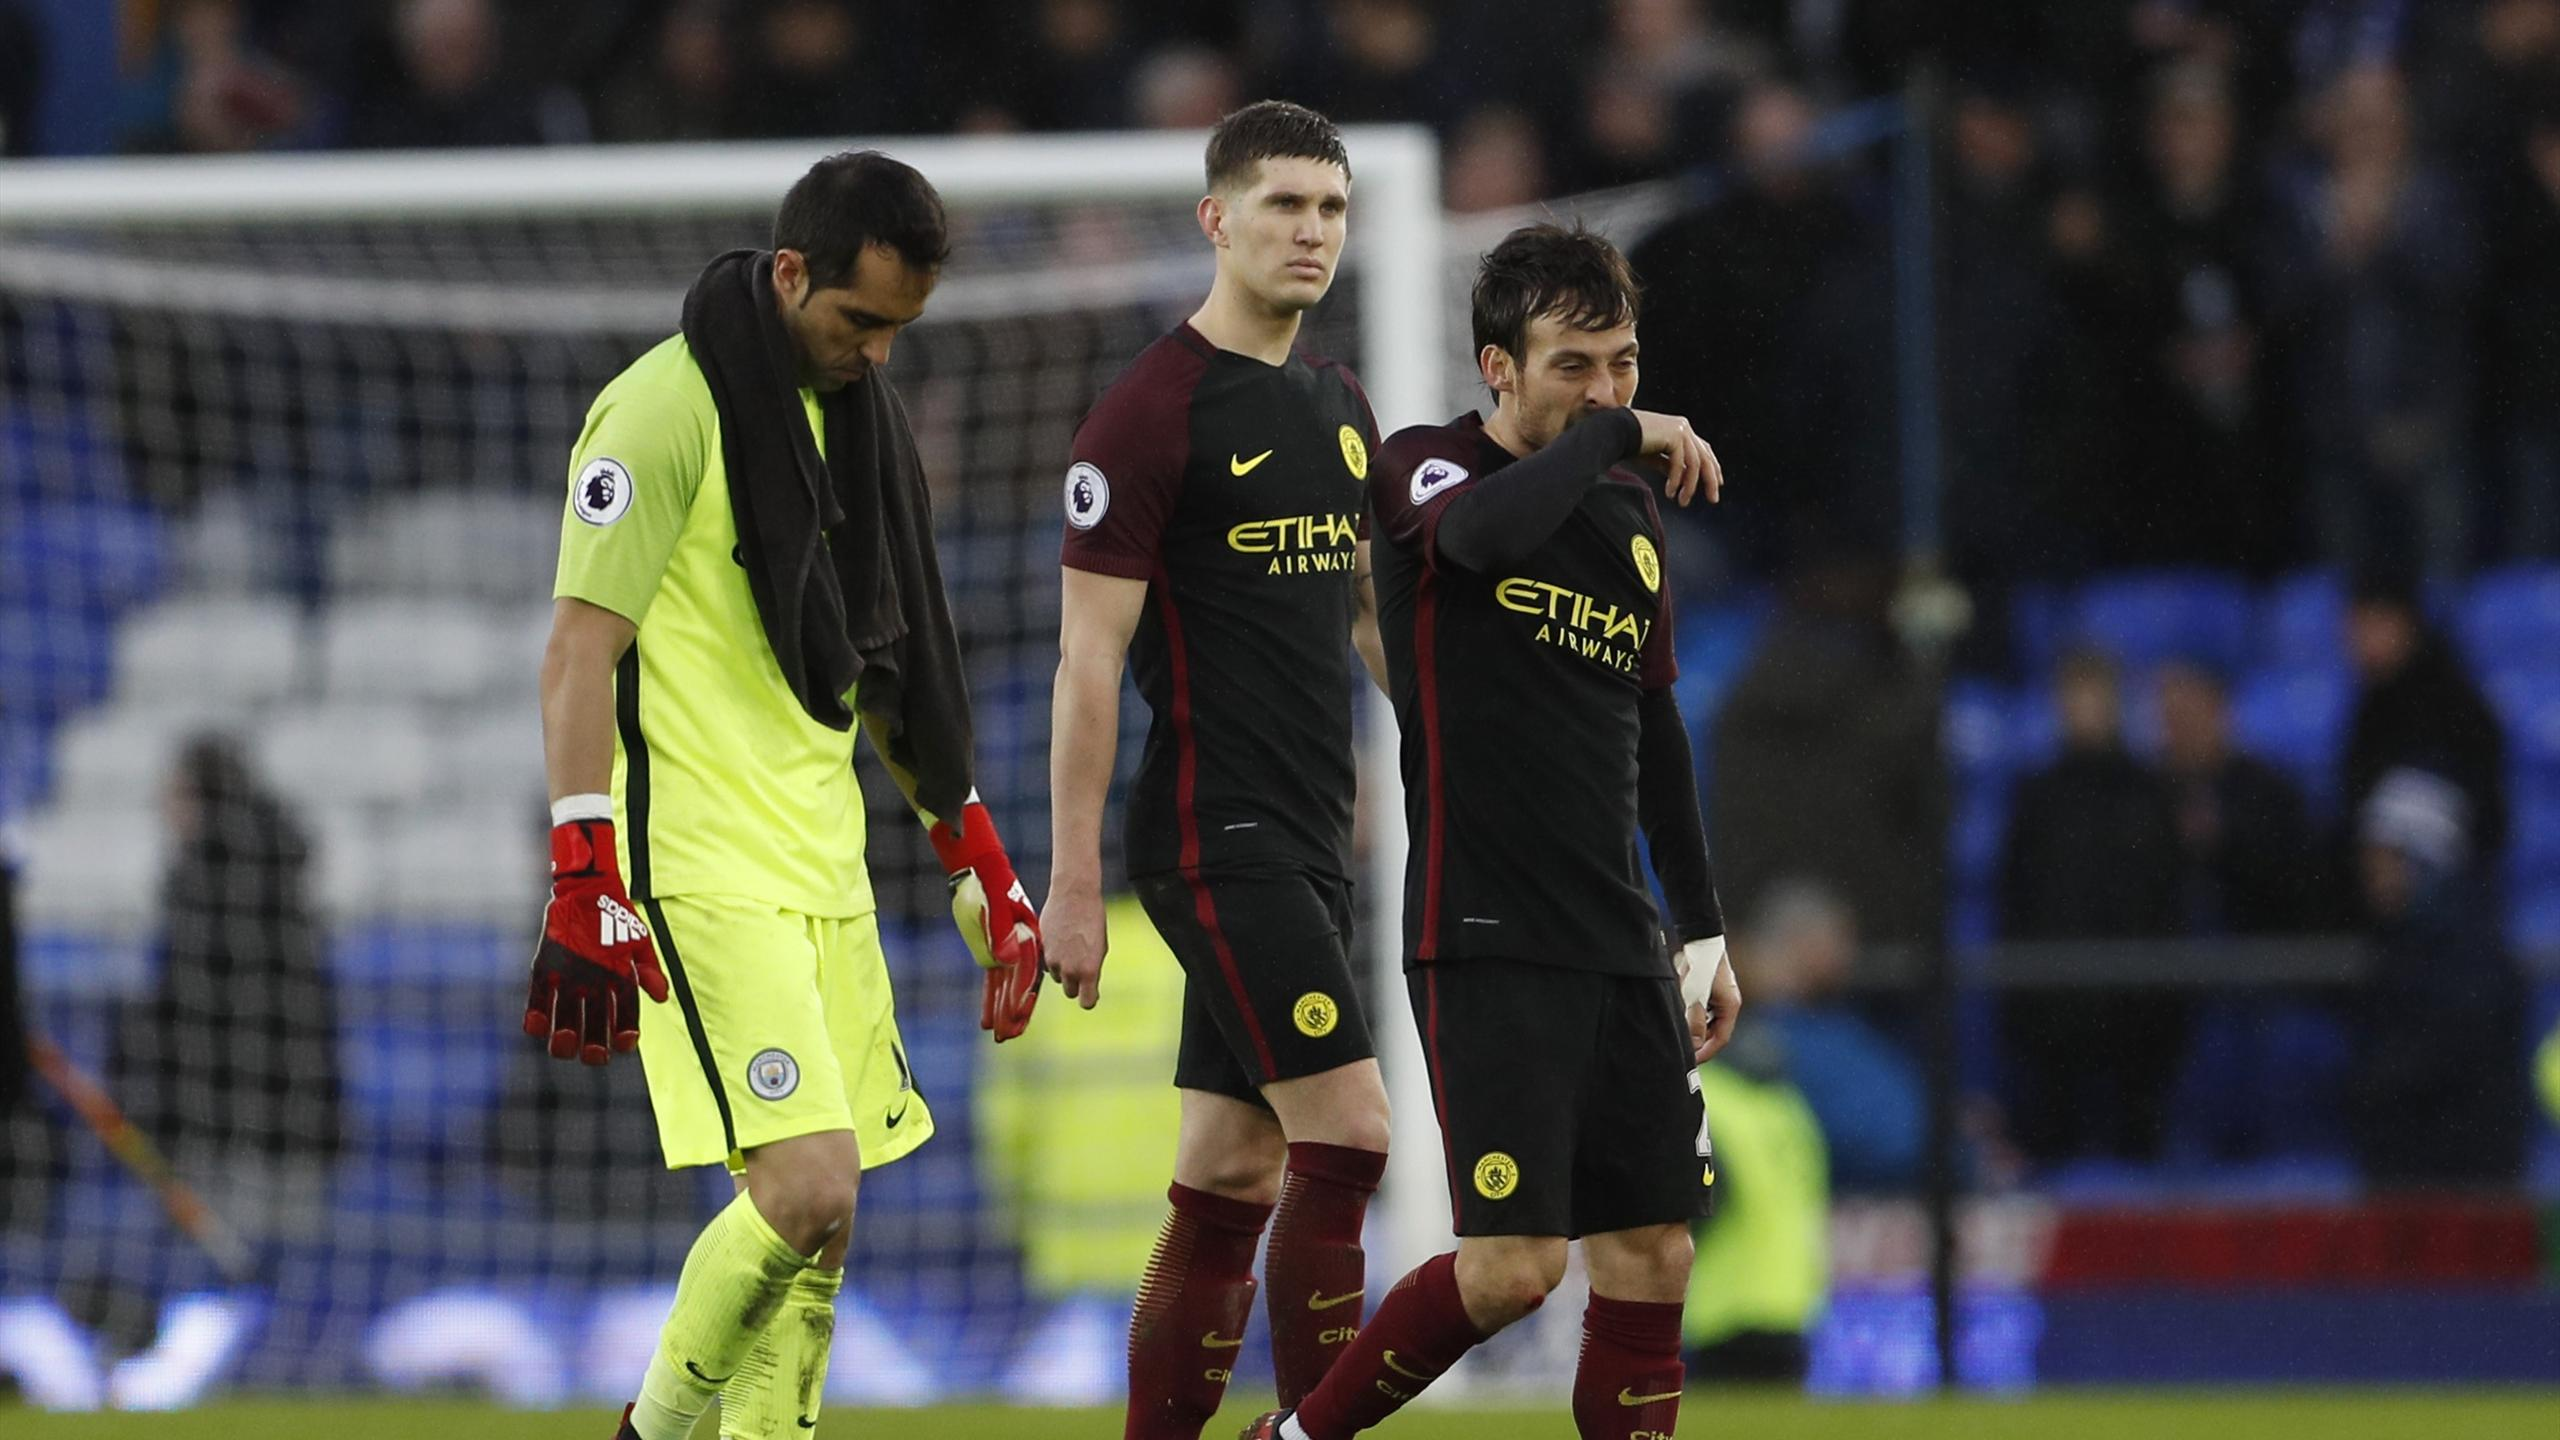 Manchester City's Claudio Bravo, John Stones and David Silva look dejected after the game